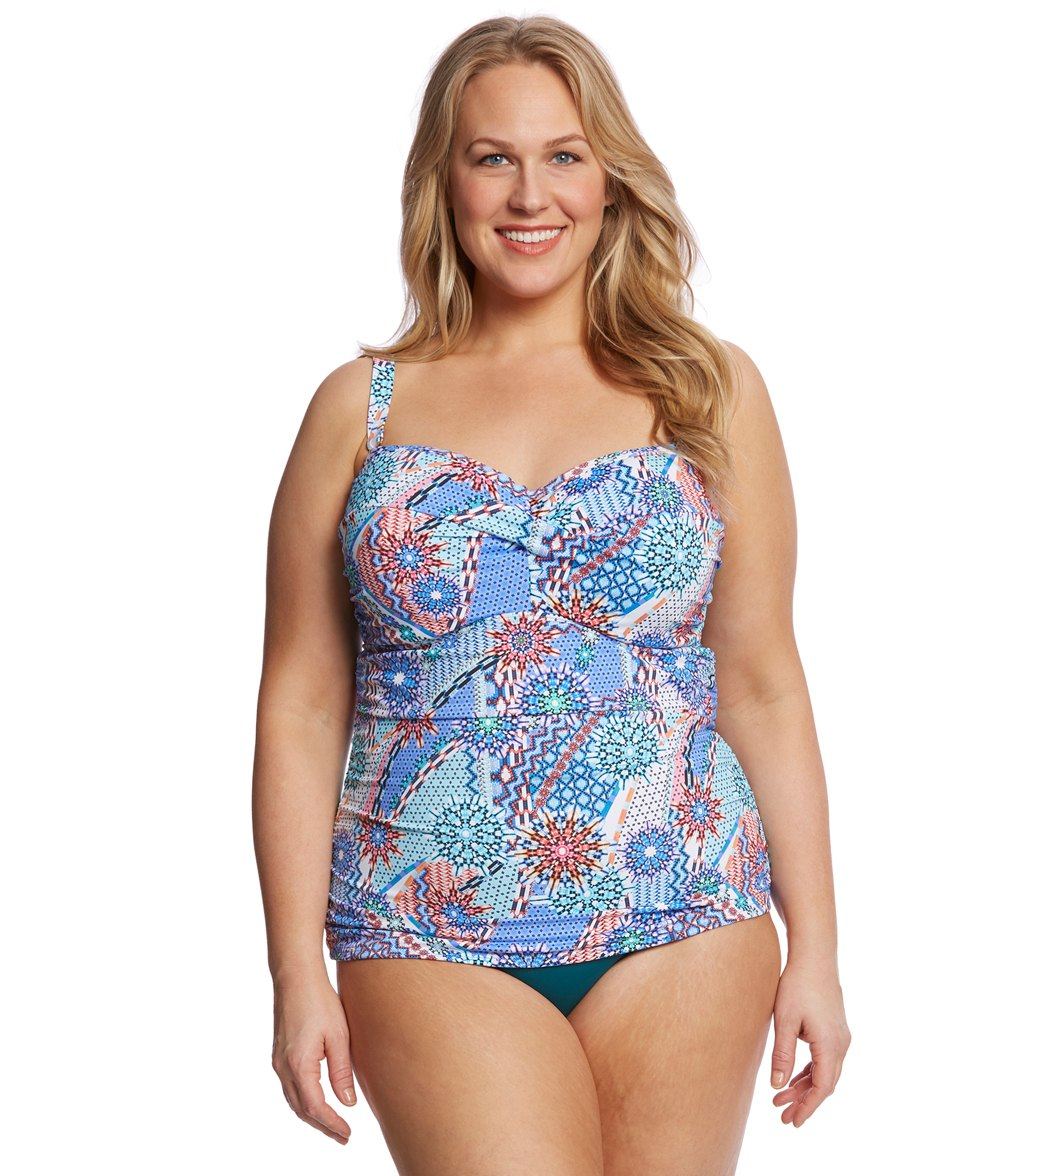 e2cd9121508 Sunsets Plus Size Impulse Iconic Twist Tankini Top (D/DD Cup) at ...